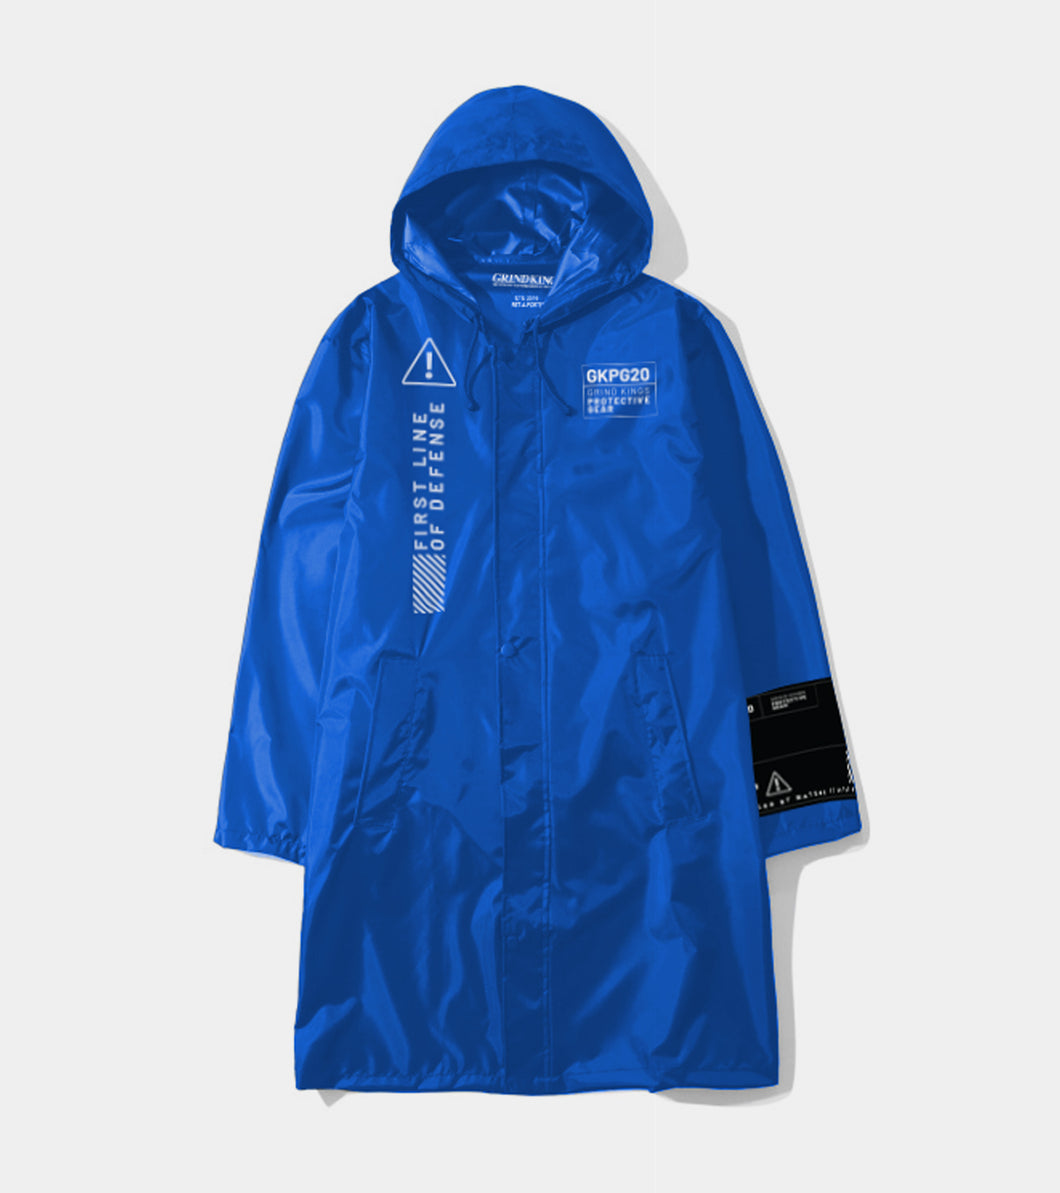 GKPG20 Logo PPE Trench - Blue